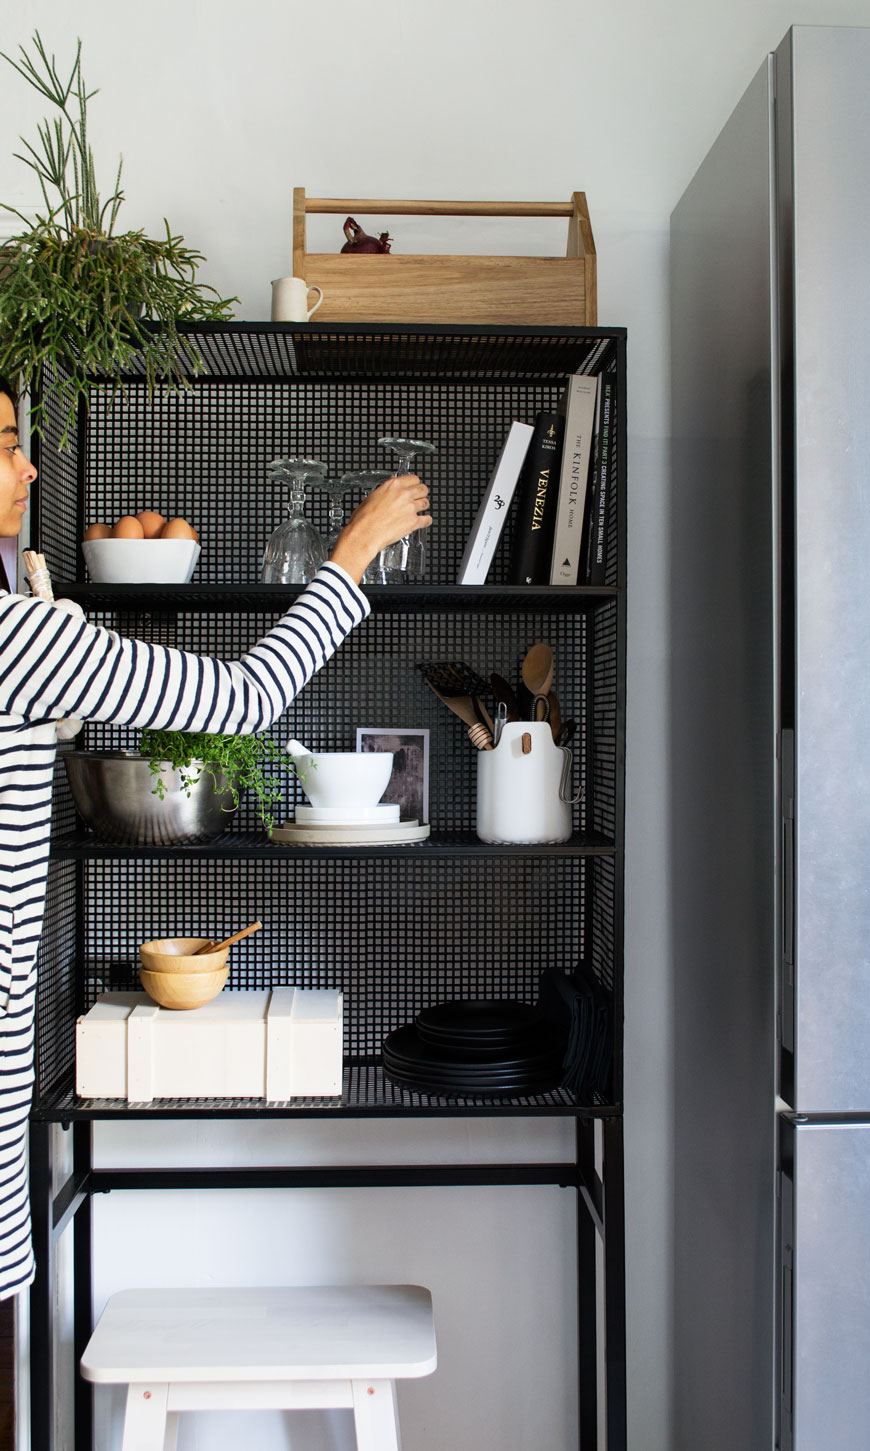 How To Style Wire Shelves In Your Kitchen and 15 Everyday Open Shelf ...